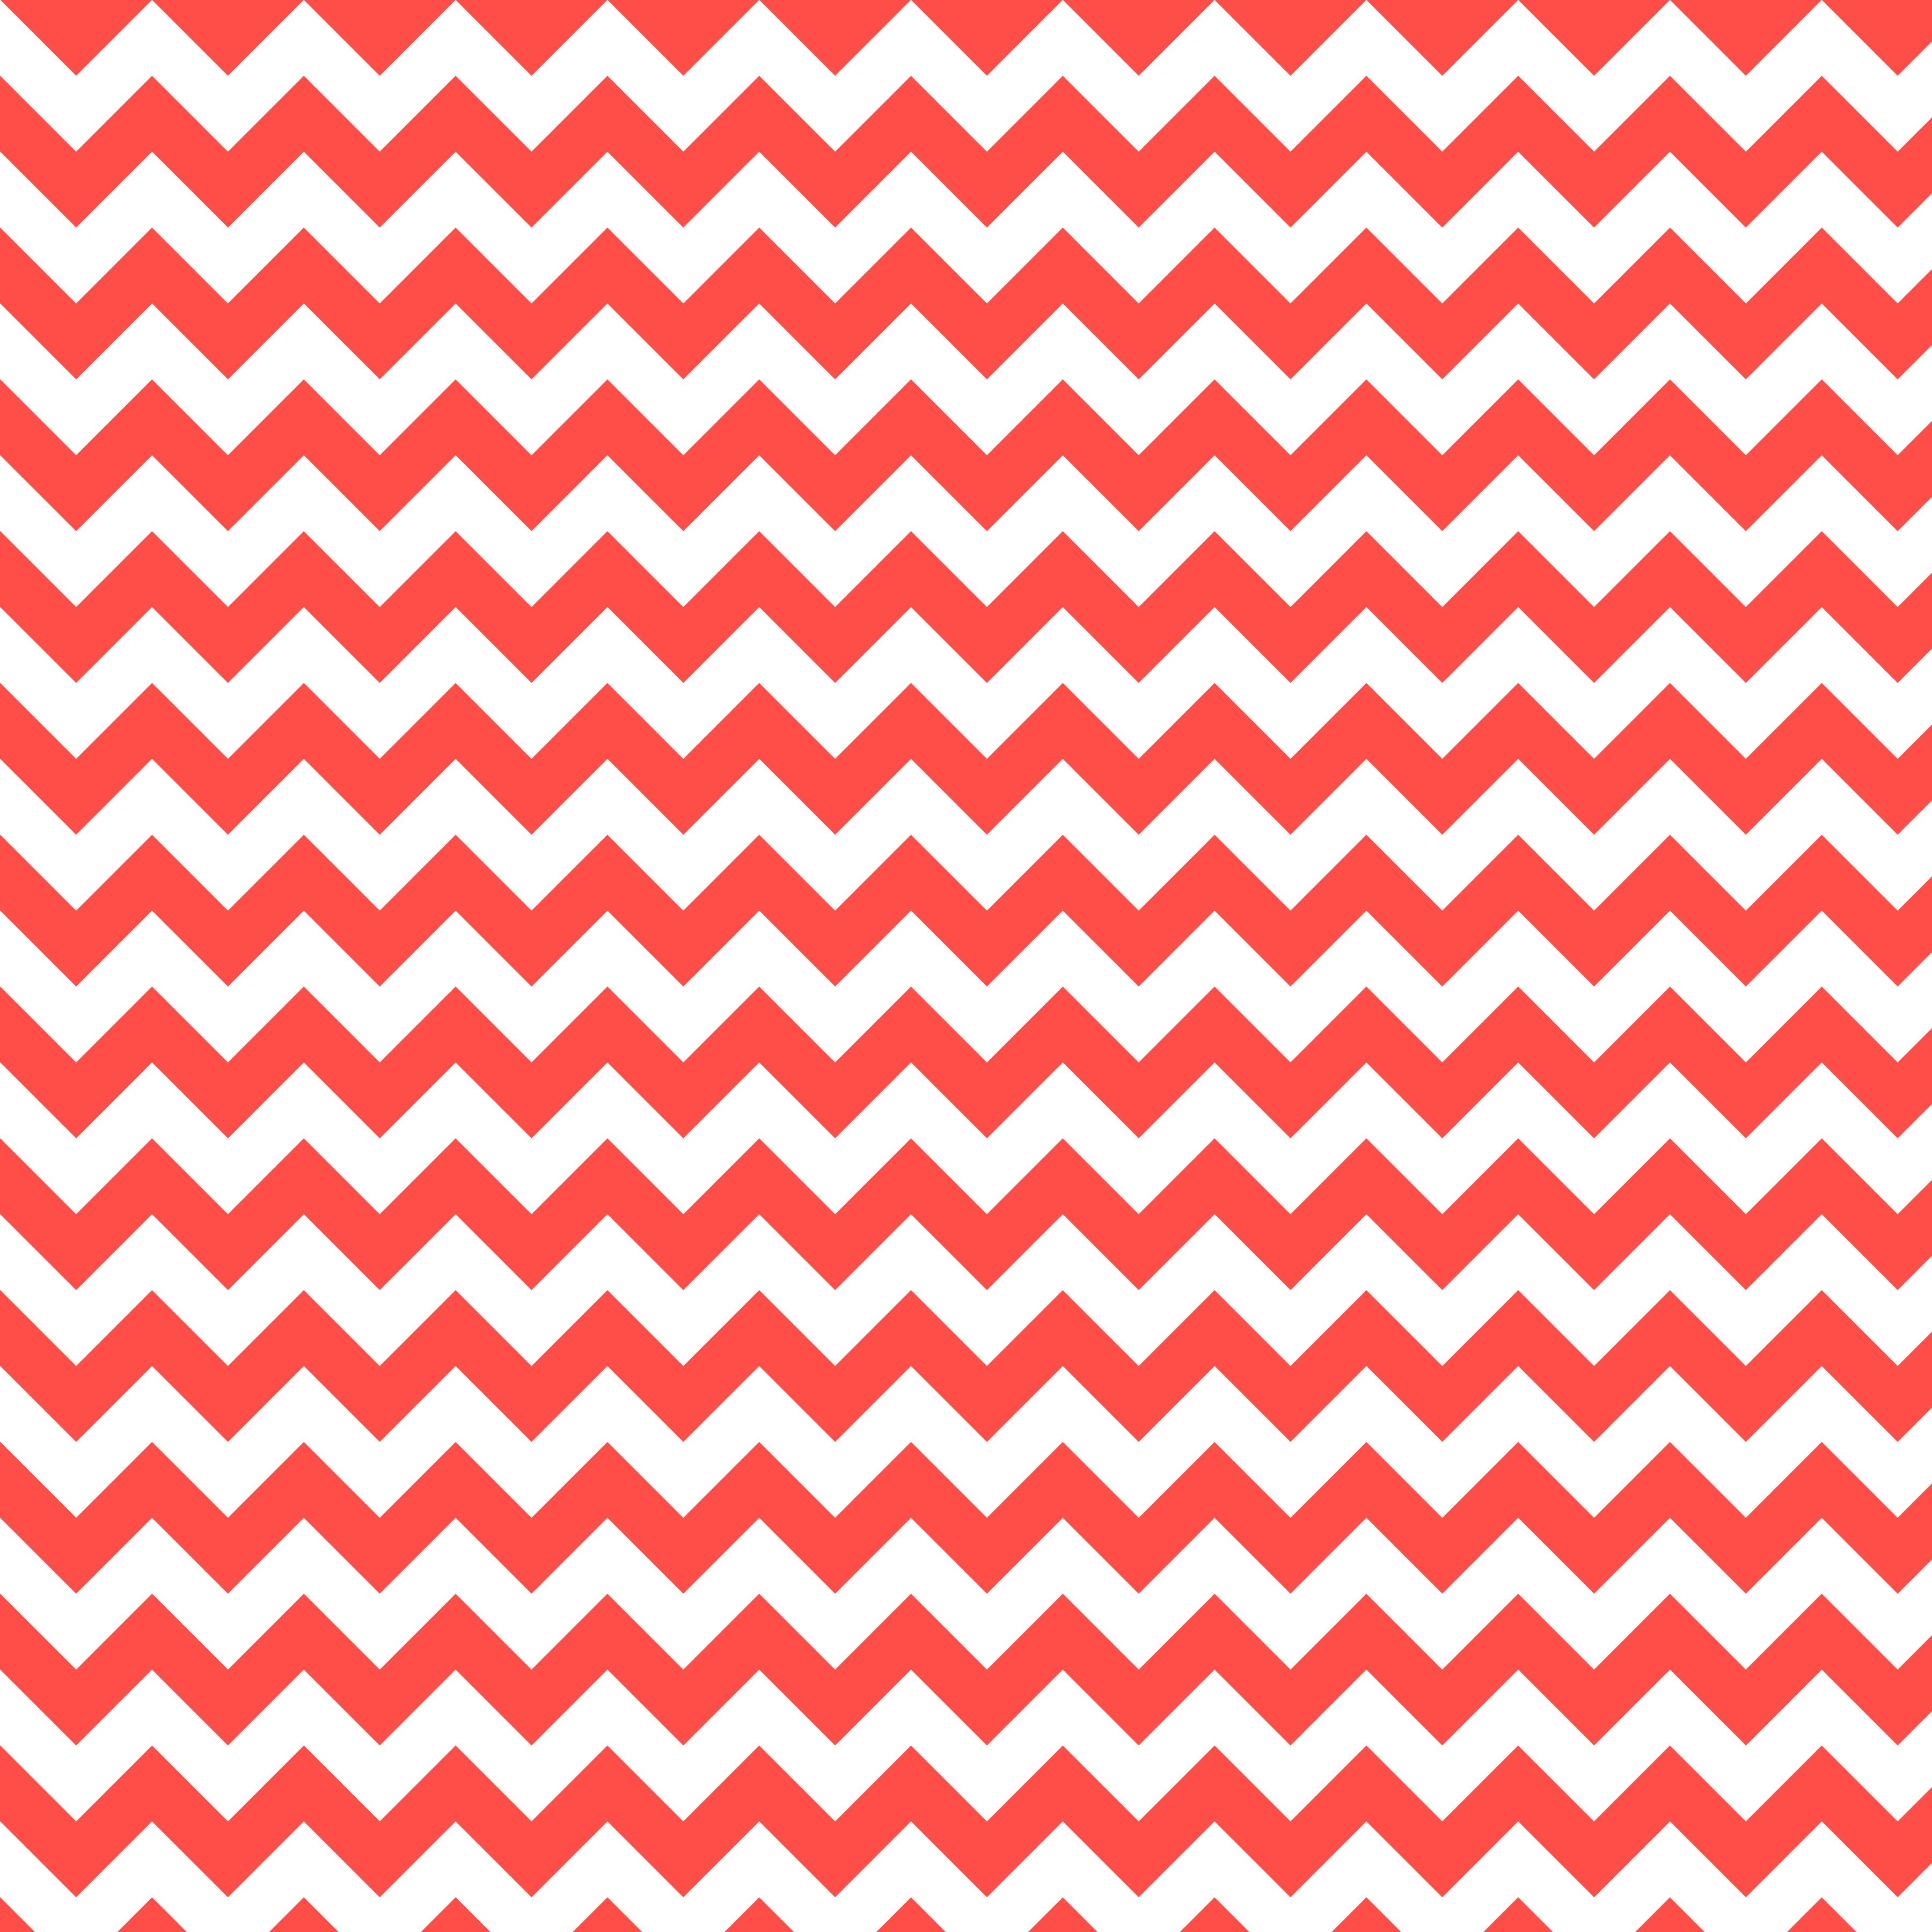 Bright and Cheerful Chevron Digital Paper-Seamless example image 4